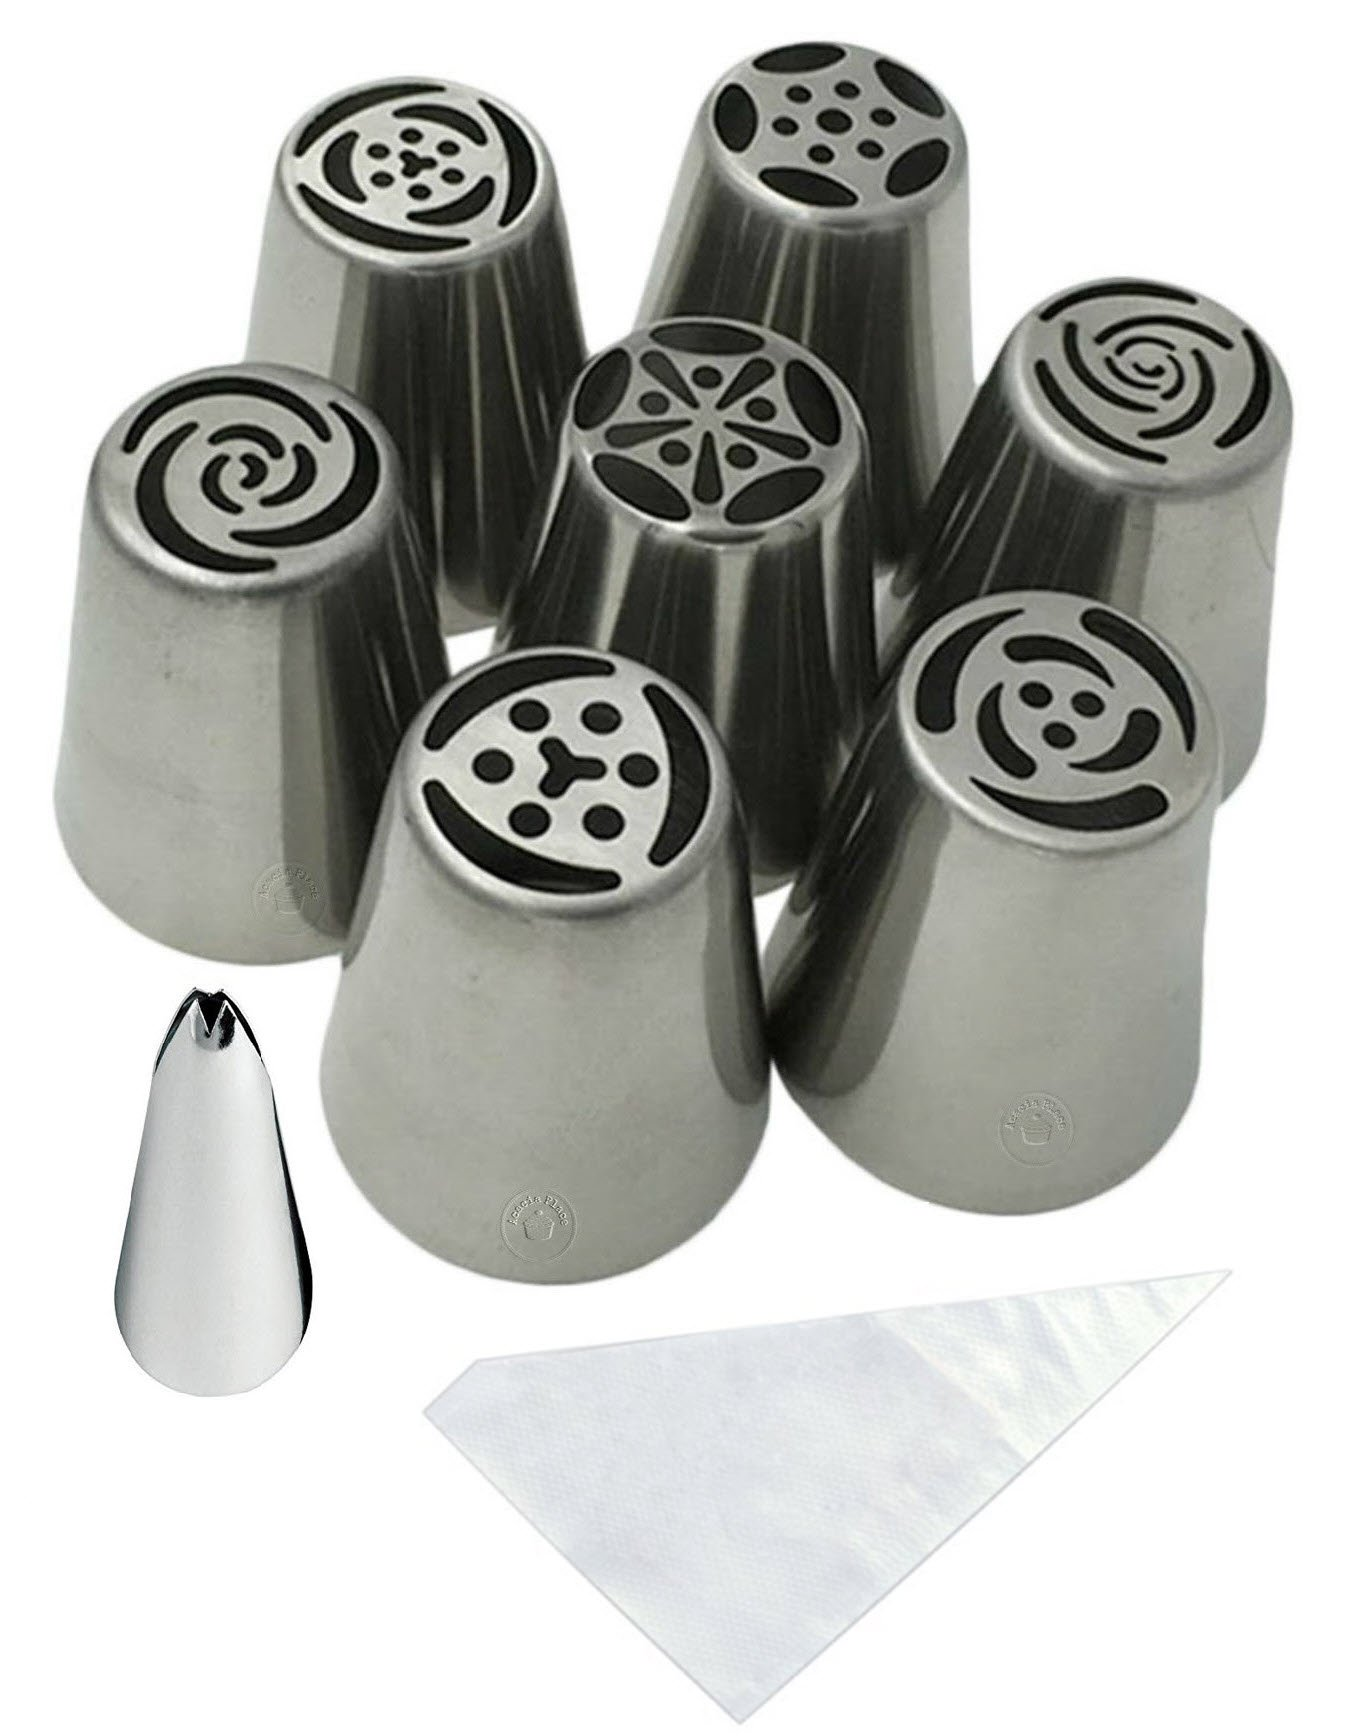 Acacia Place Russian Piping Tips Large Flower Cake/Cupcake Stainless Steel Decorating Icing Nozzles with Leaf Tip and Disposable Pastry Bags 18pc Set